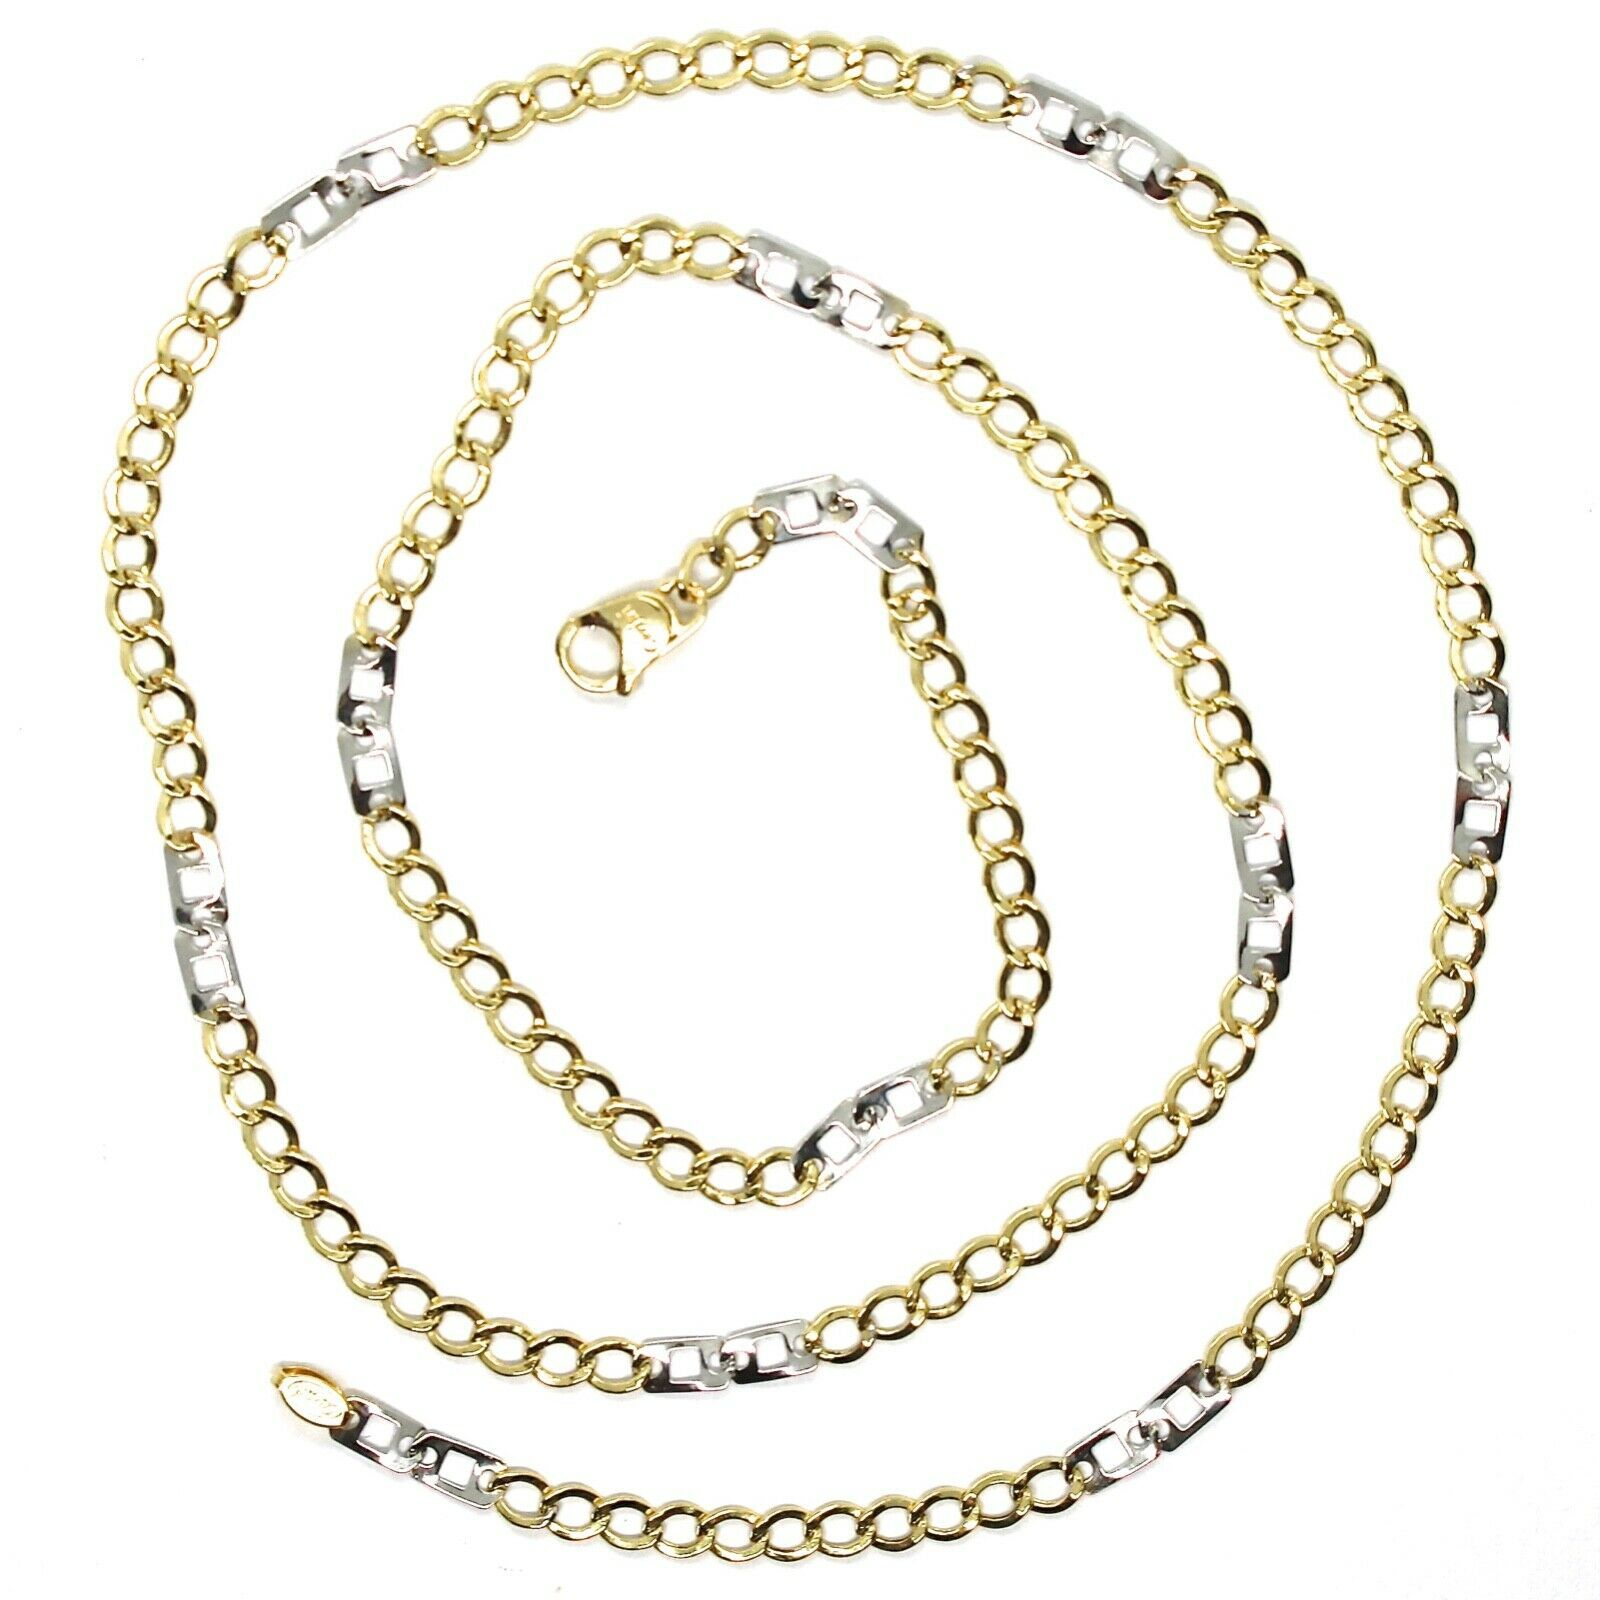 Gold Chain Yellow White 750 18K, 50 cm, Groumette Flat and Squares, 3 MM